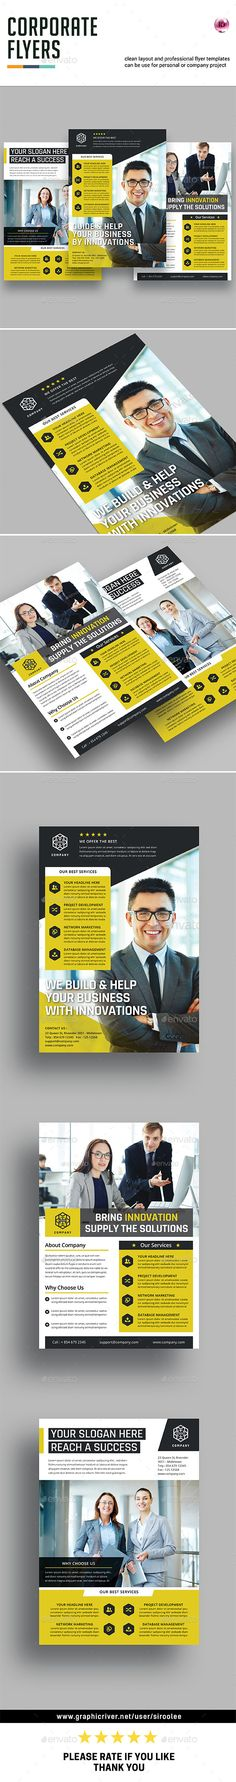 Corporate Flyer Design Template - Corporate Flyer Template InDesign INDD. Download here: https://graphicriver.net/item/corporate-flyers/17510022?ref=yinkira